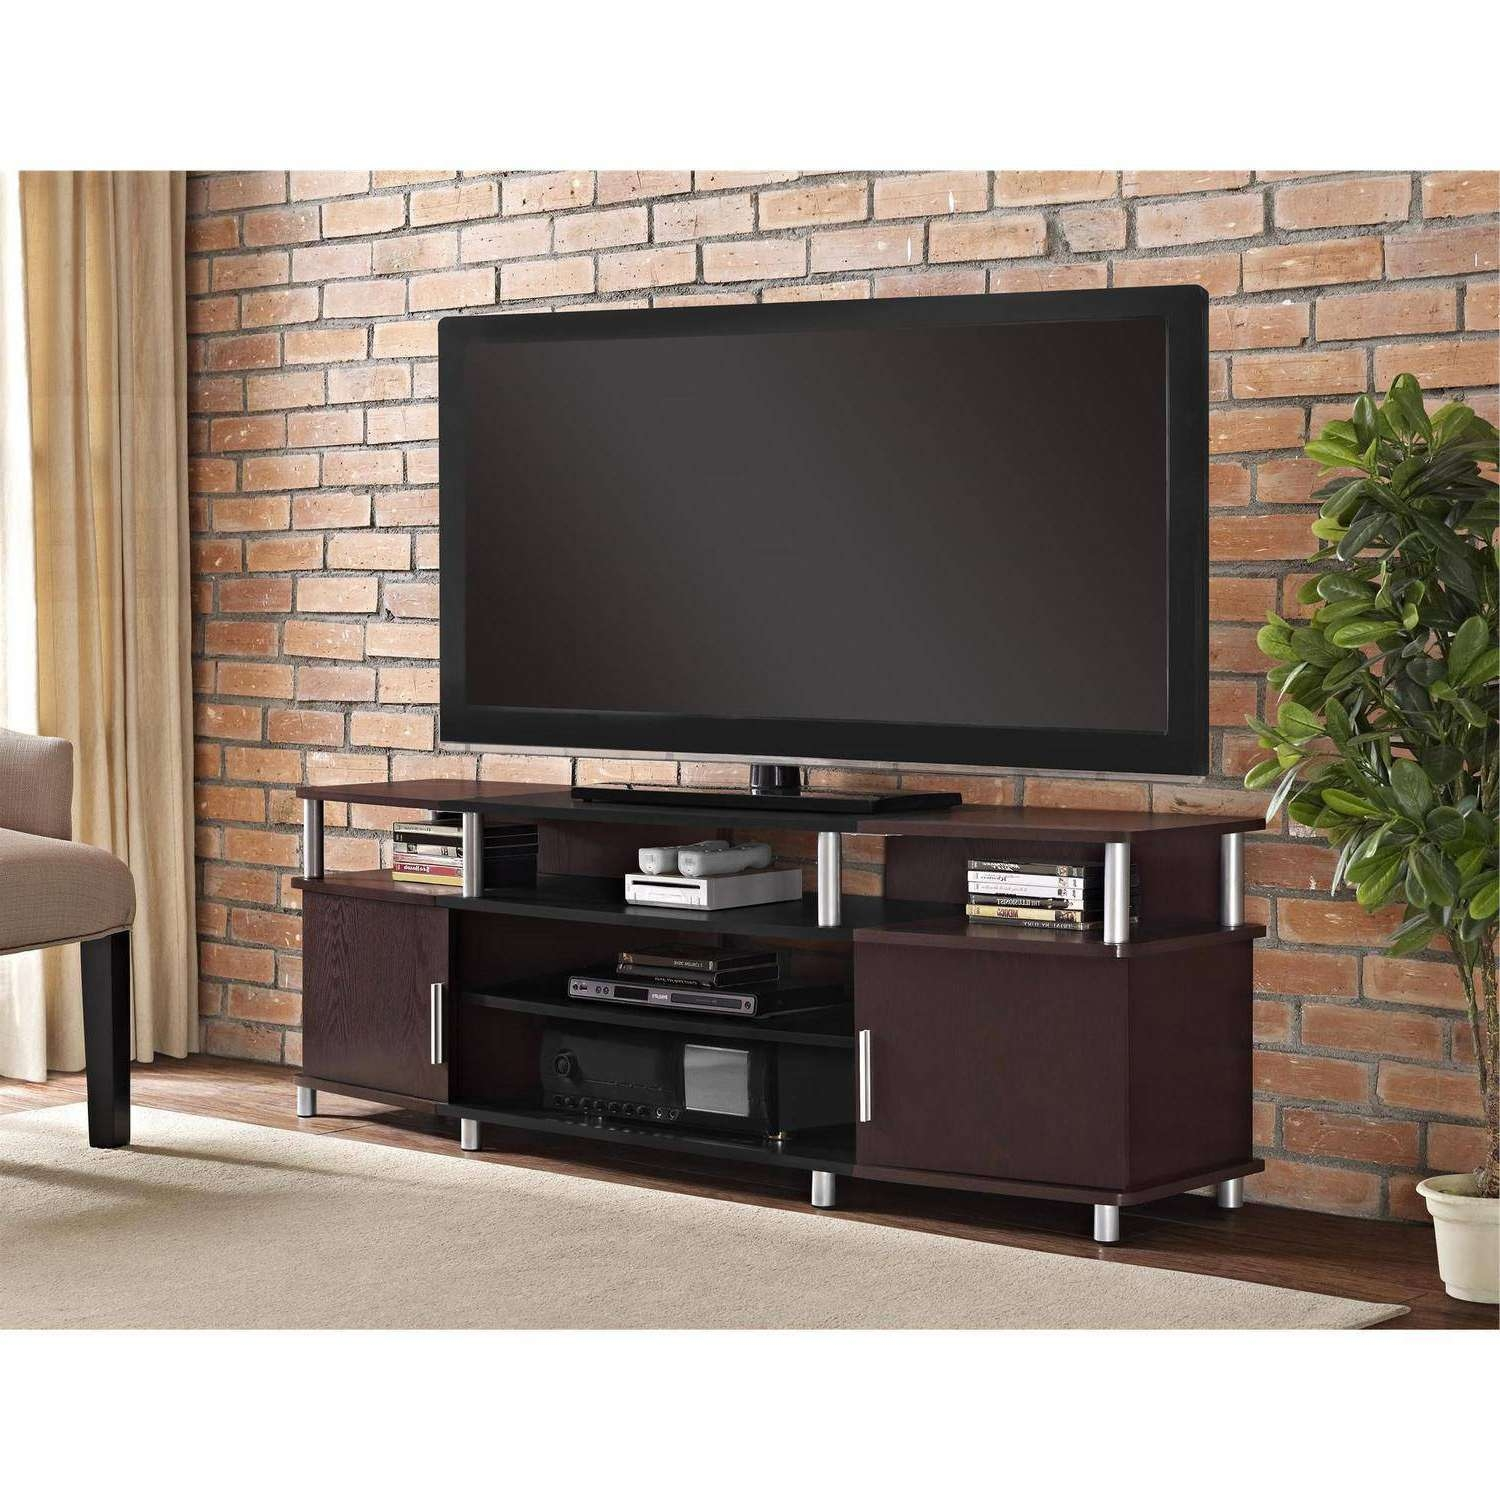 Tv Stands & Entertainment Centers – Walmart Throughout Storage Tv Stands (View 12 of 15)